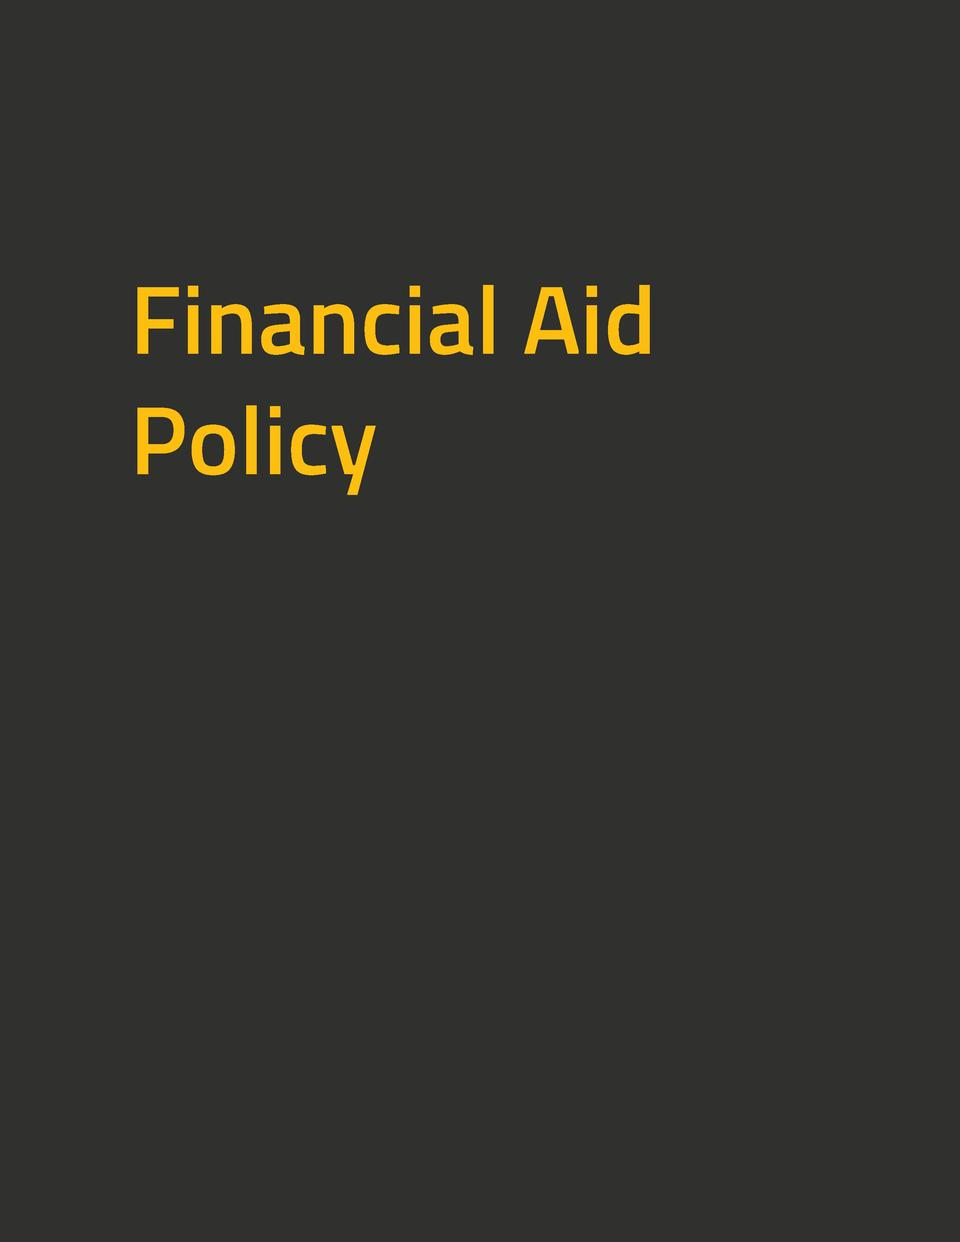 Financial Aid Policy